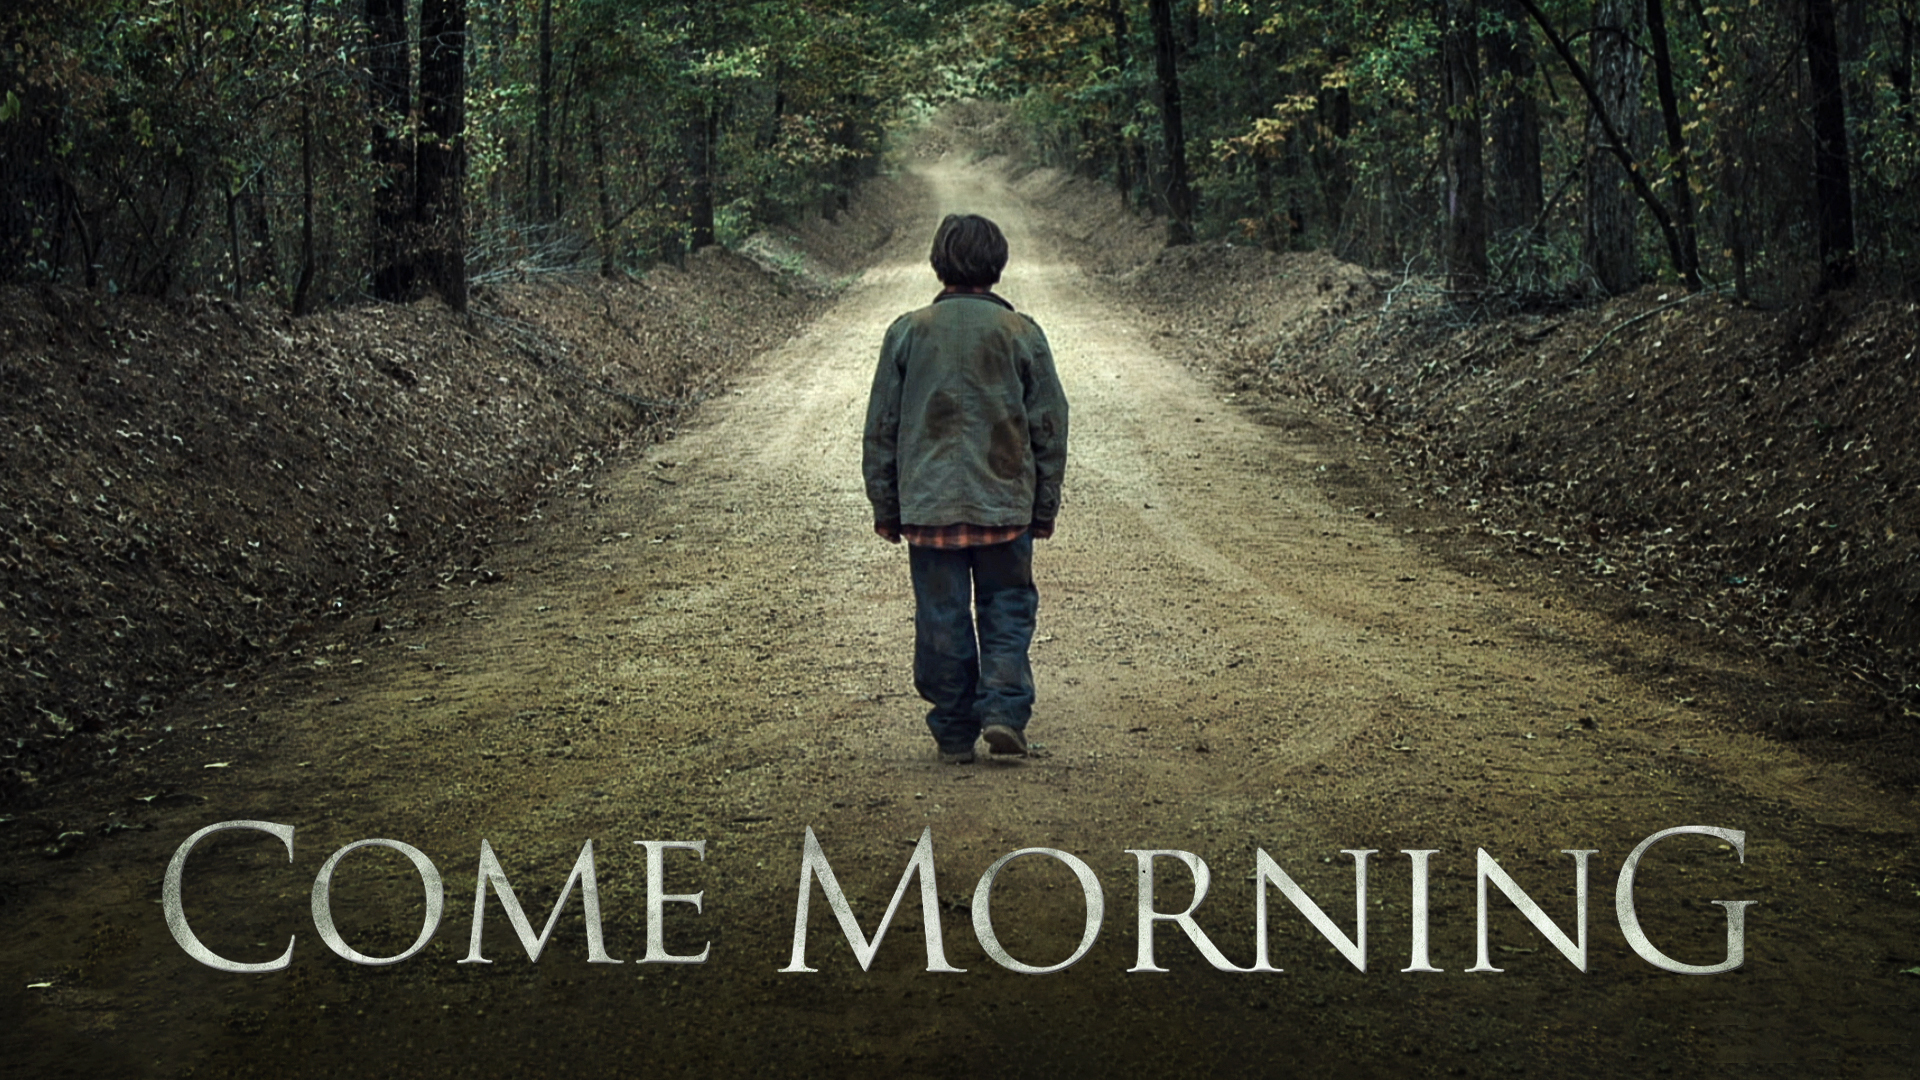 Come Morning